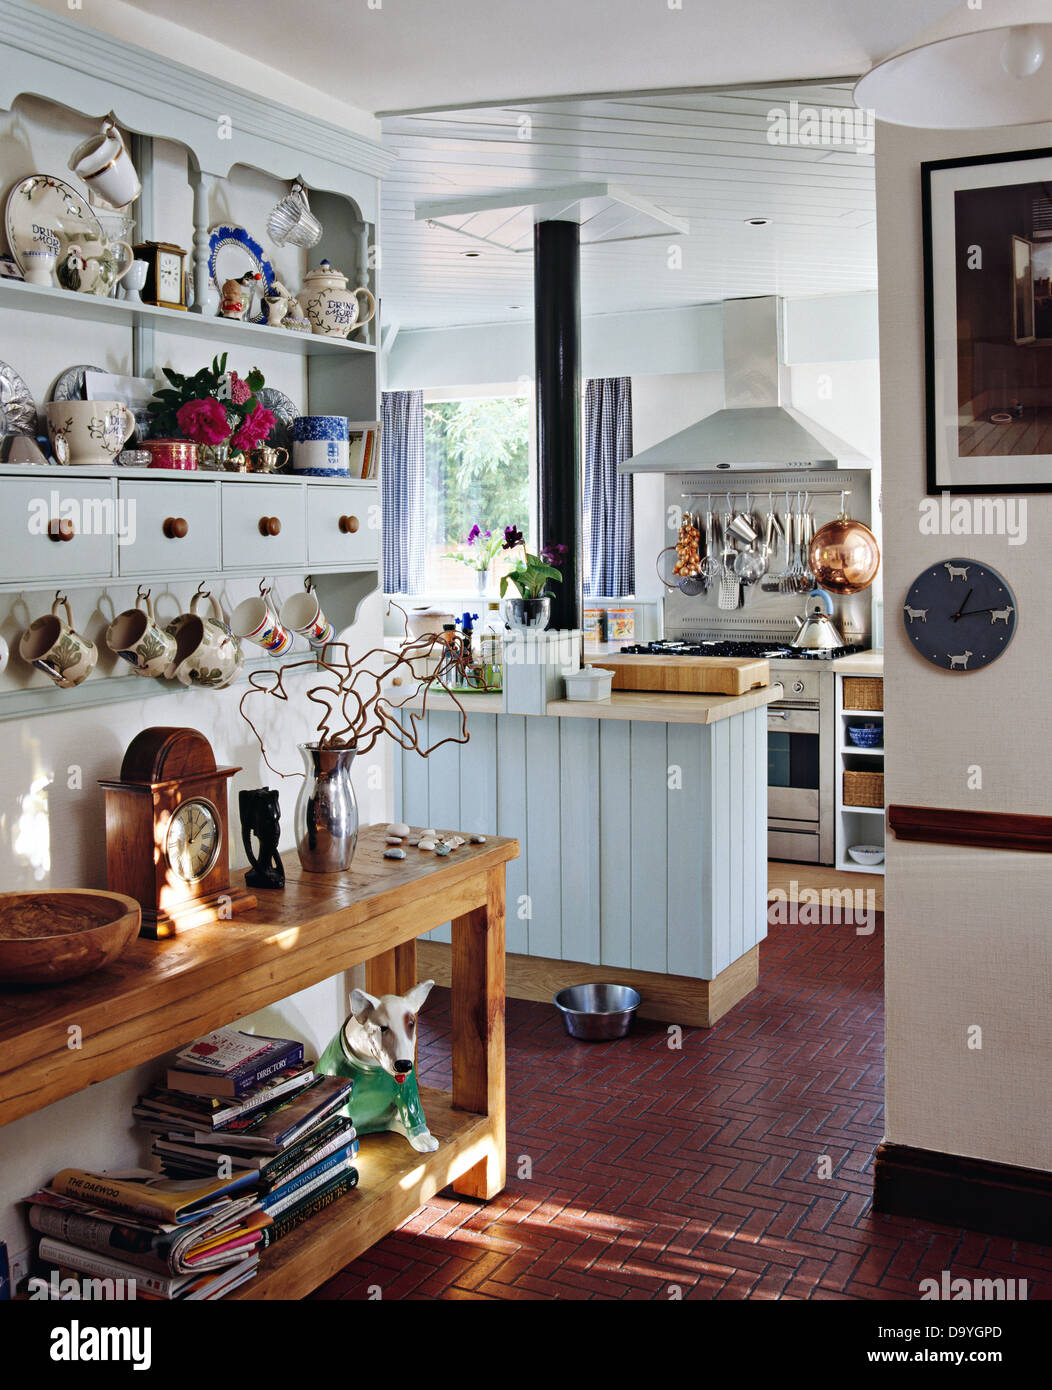 crockery on shelves of painted wall cupboard above simple wood console D9YGPD